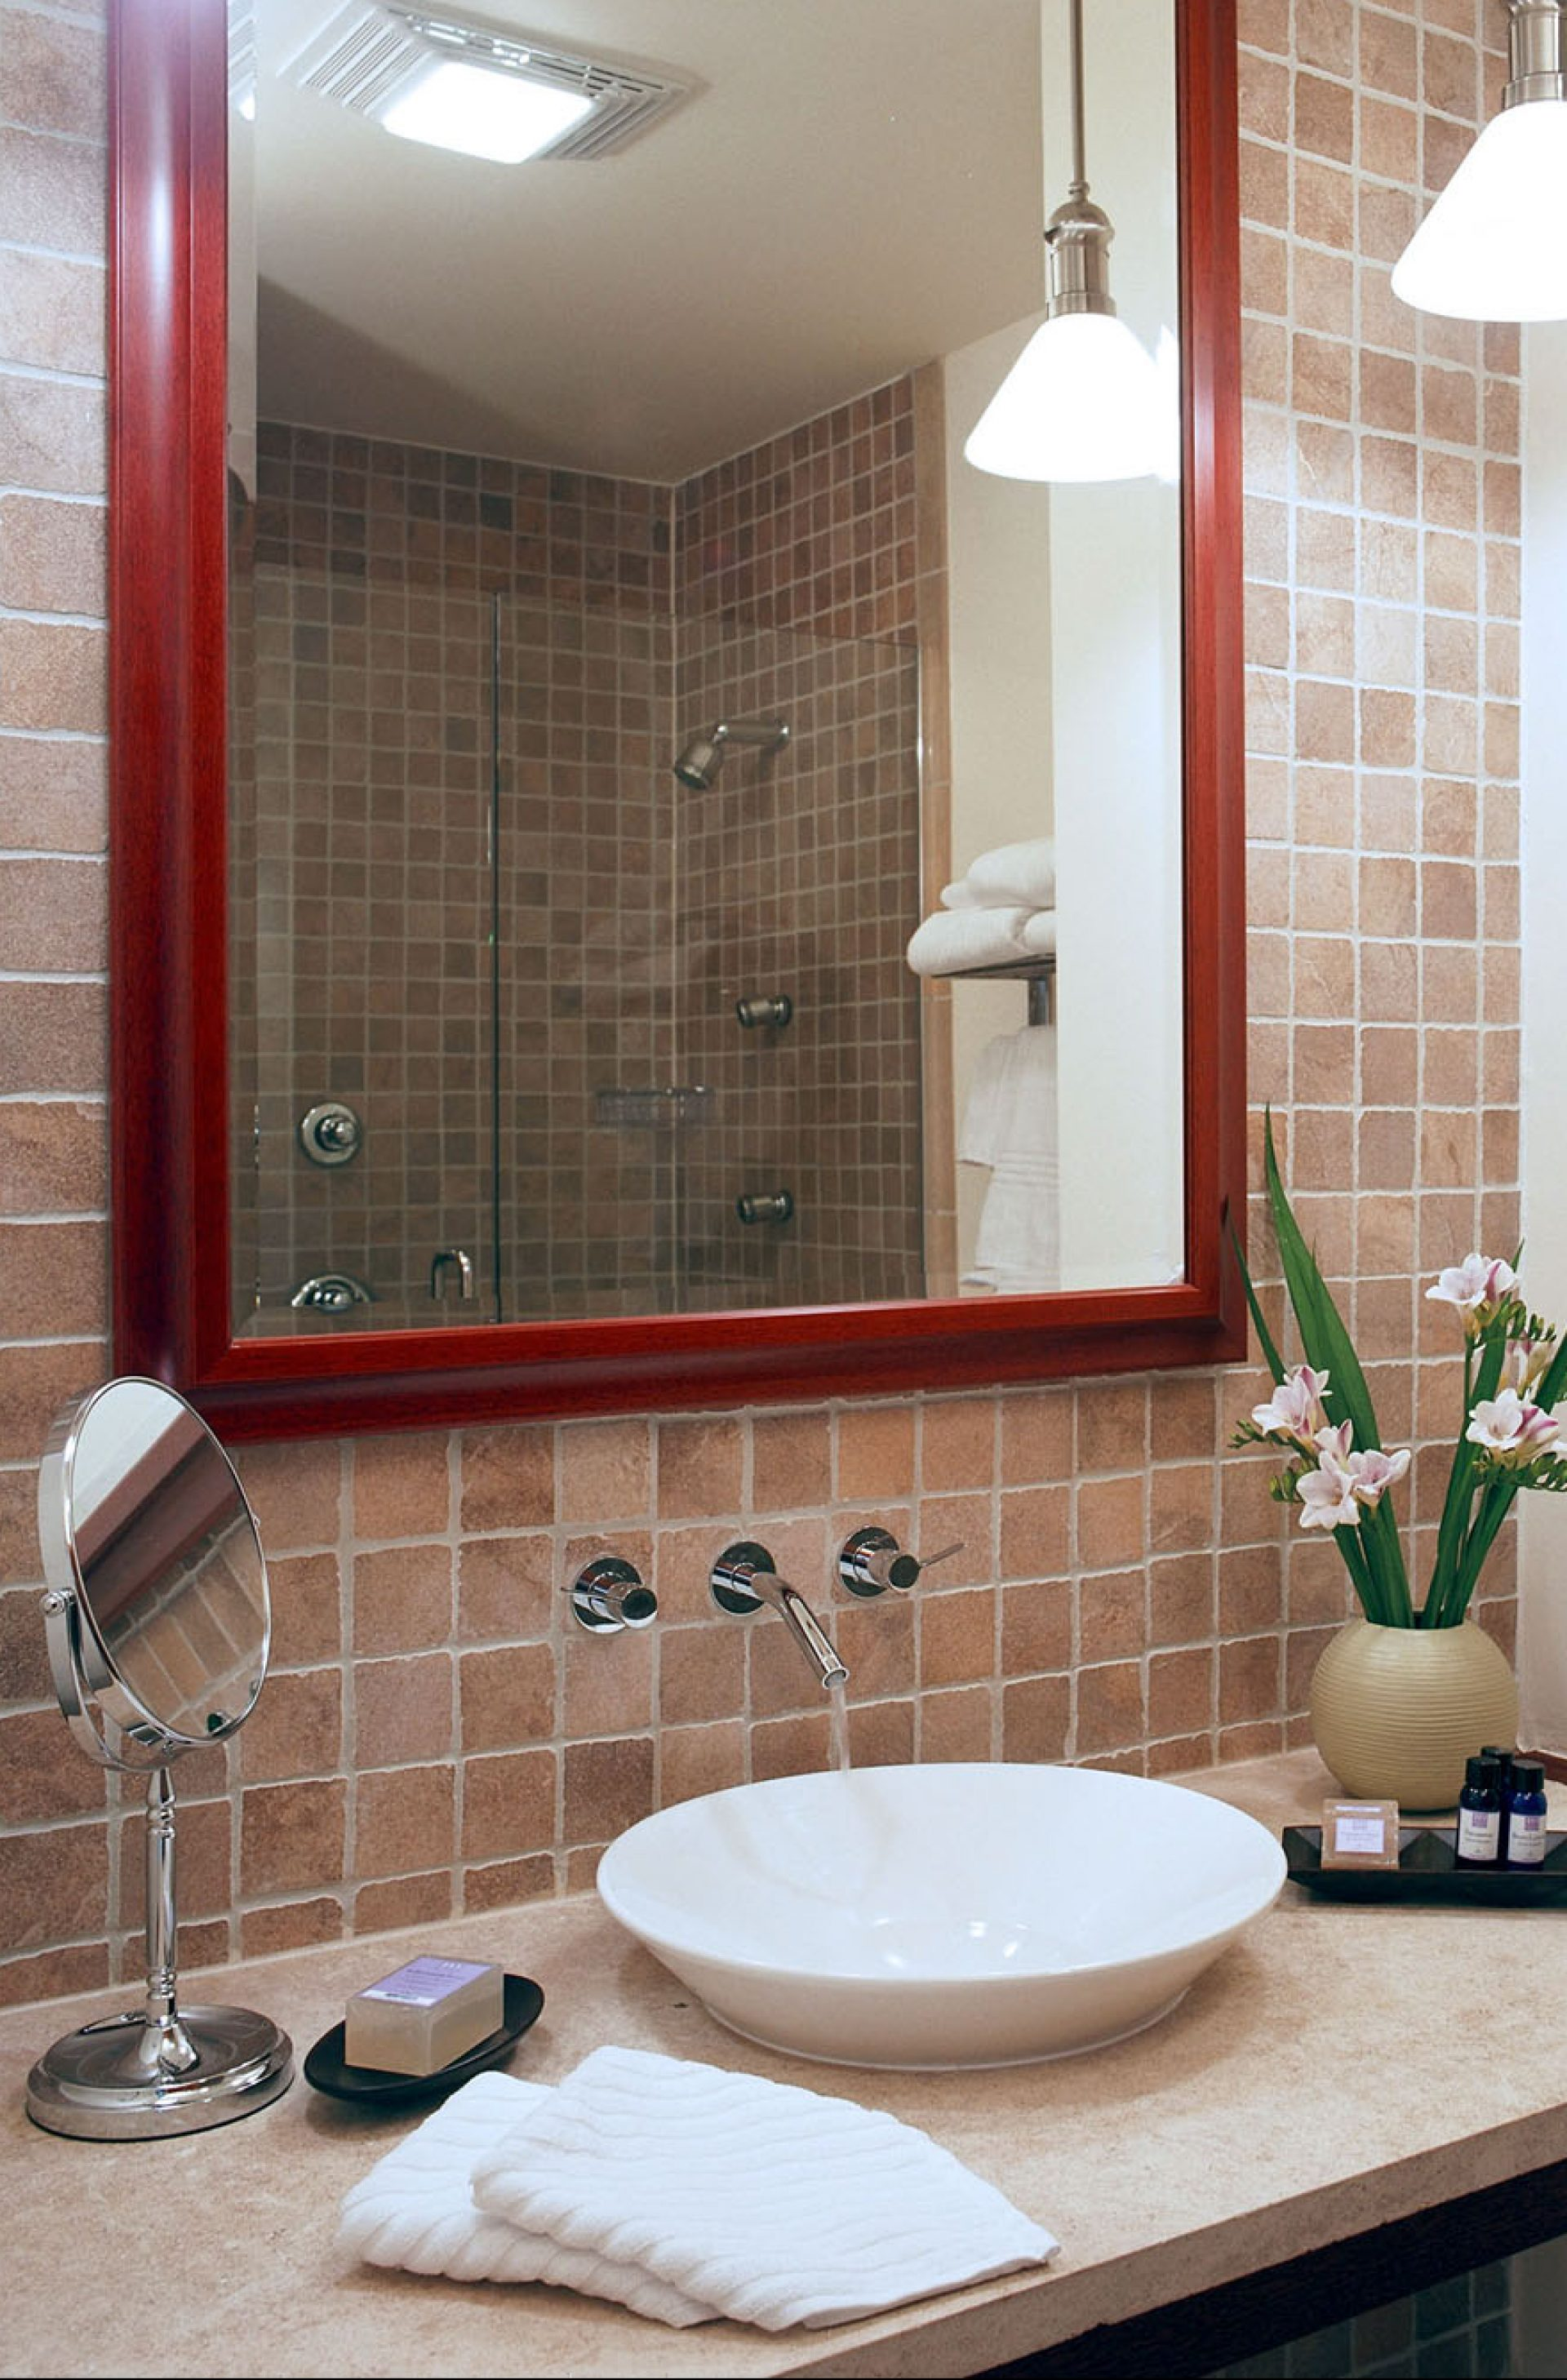 beautiful bathroom at The Harborfront Inn with bath amenities